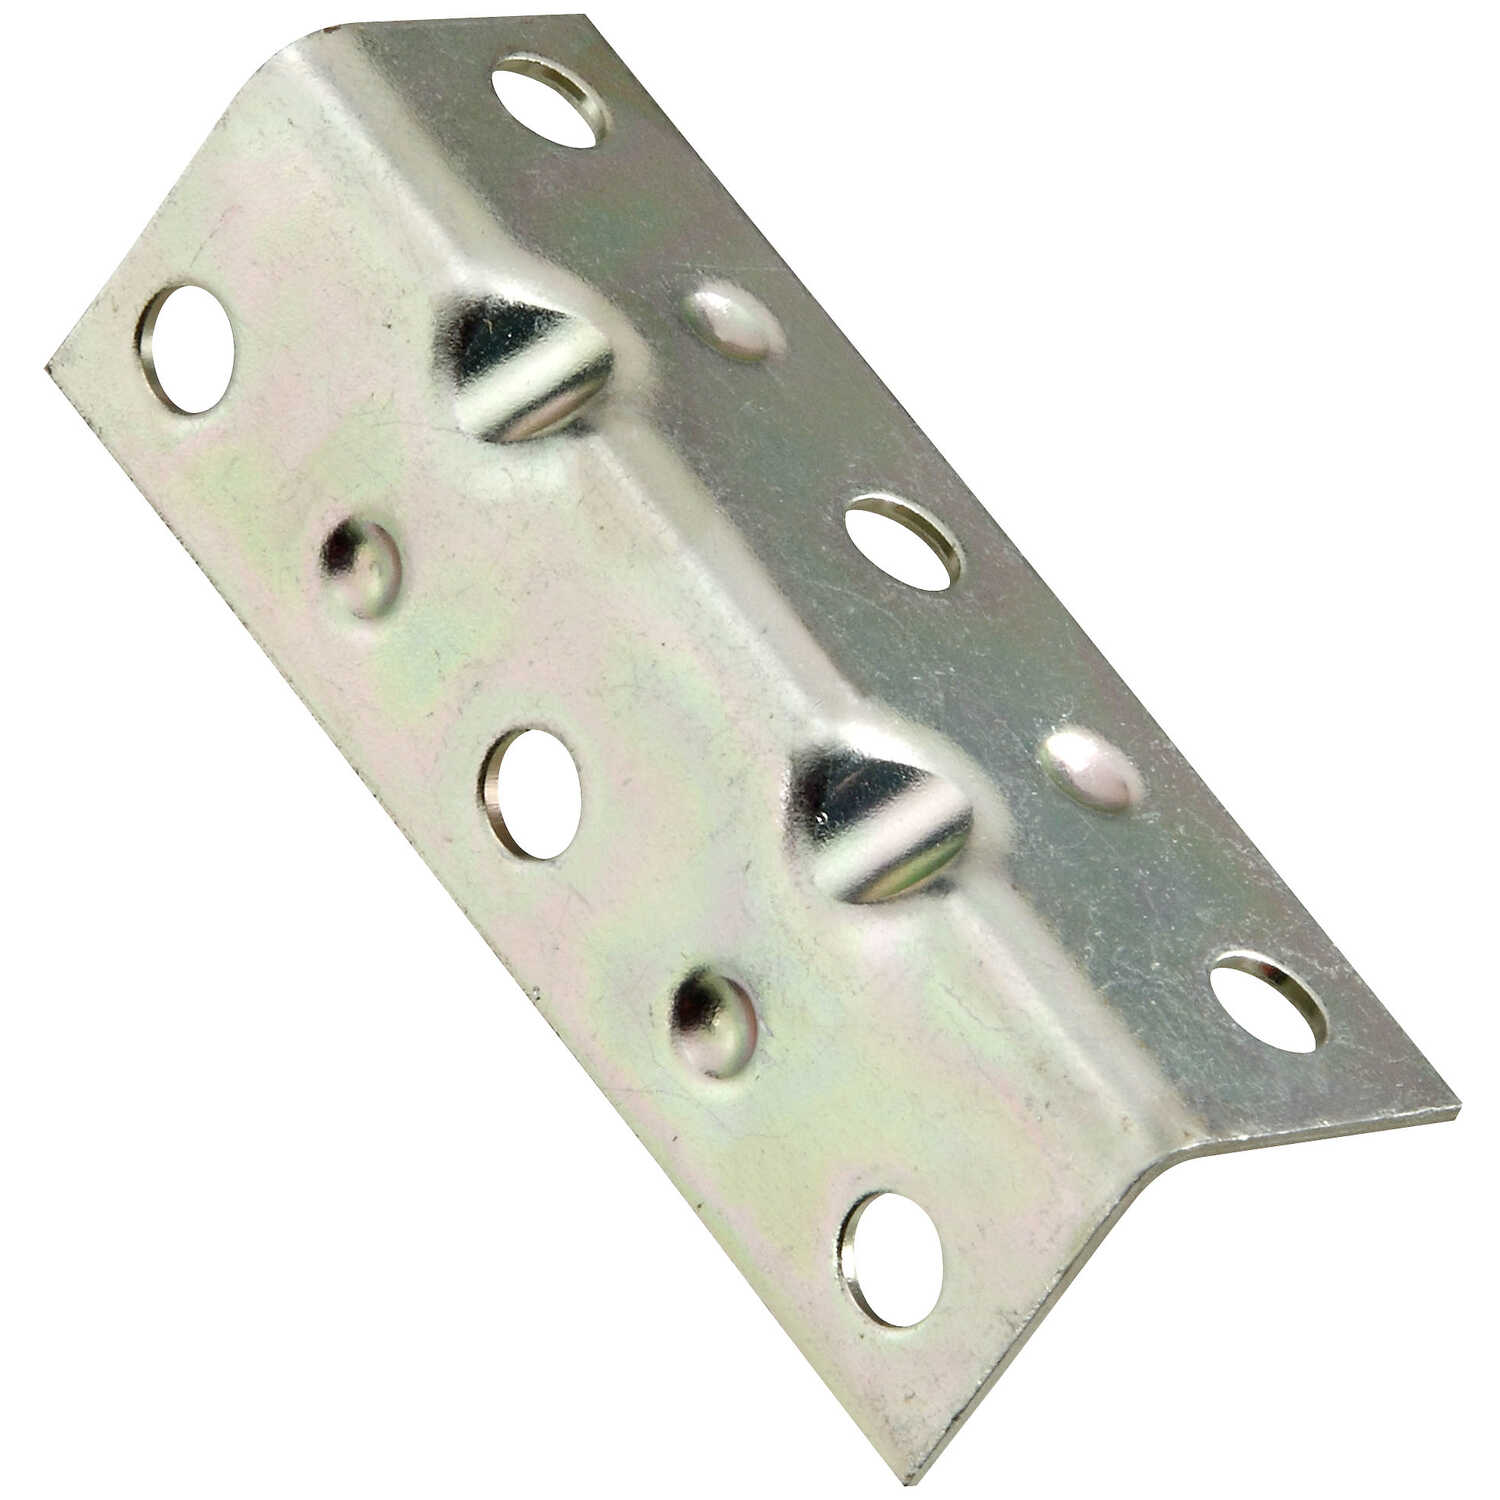 National Hardware  2-1/2 in. H x 3/4 in. W x 0.04 in. D Zinc-Plated  Steel  Inside  Corner Brace